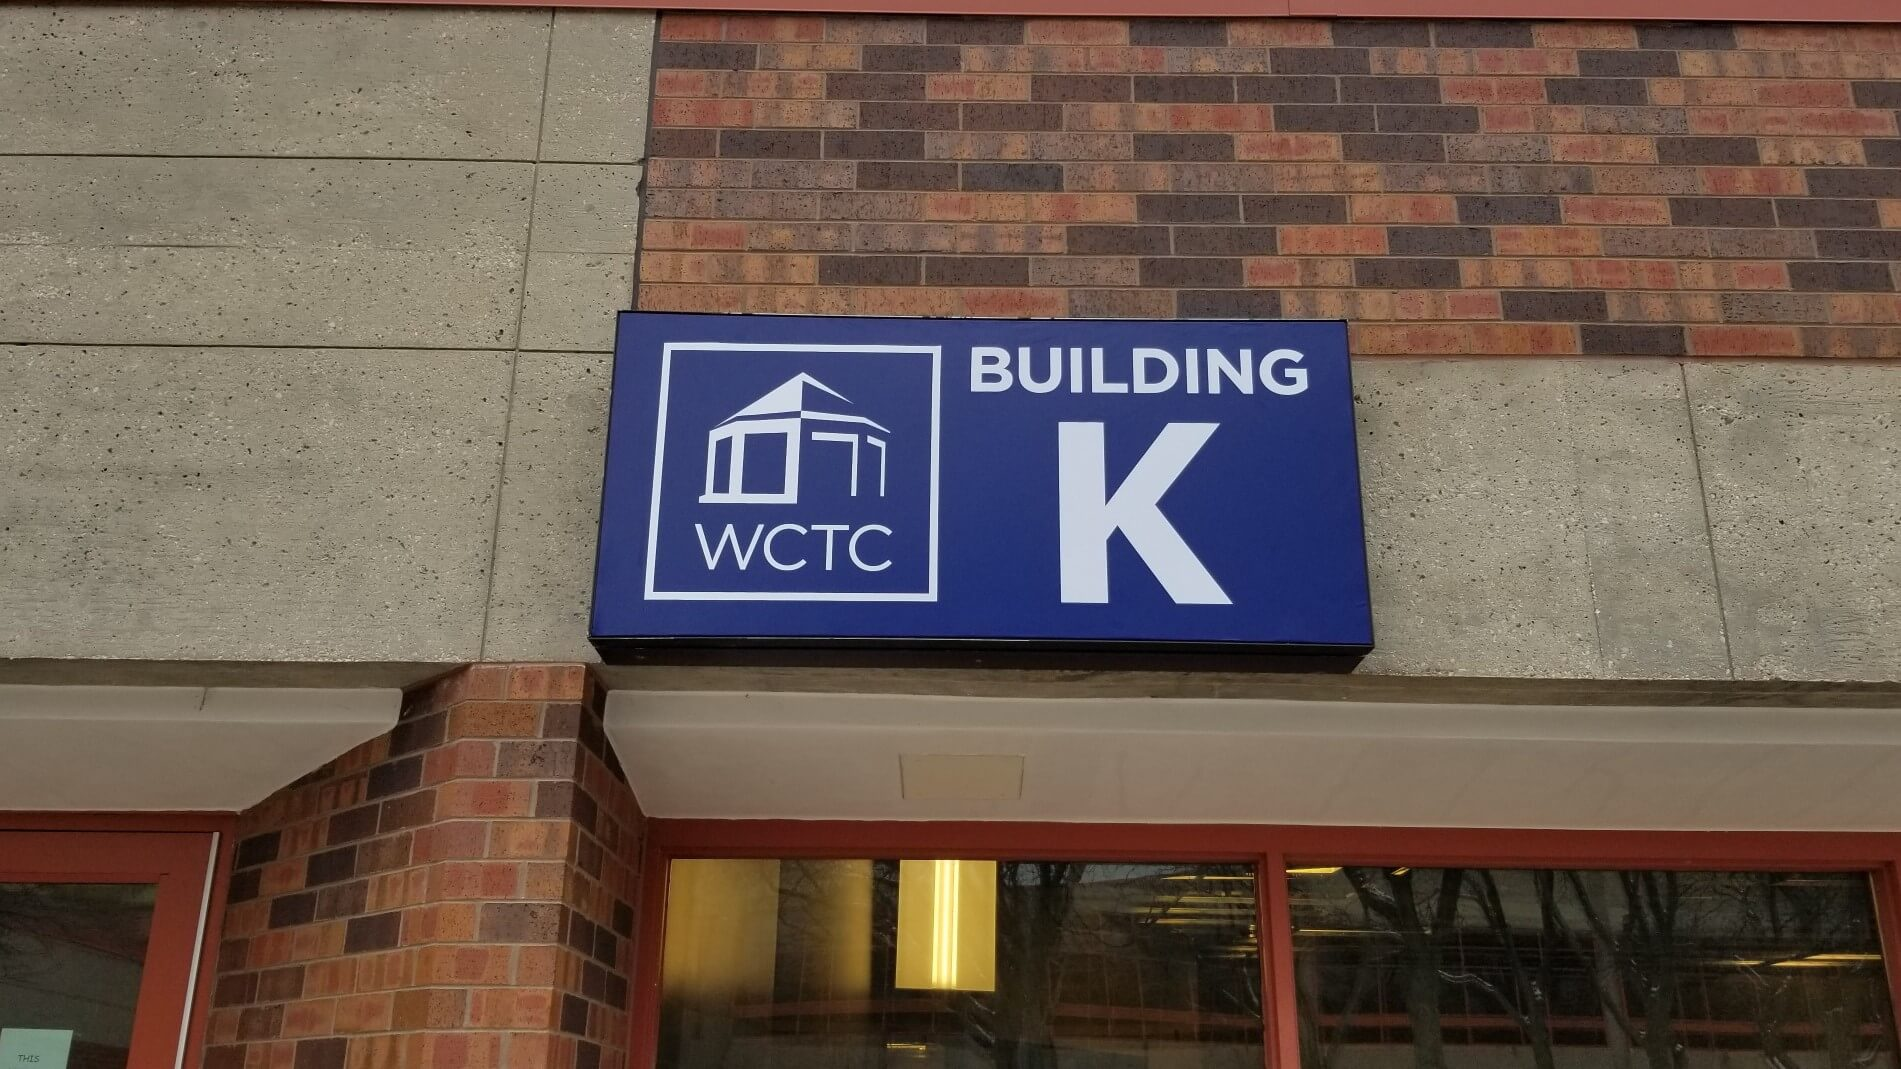 WCTC College outdoor signage